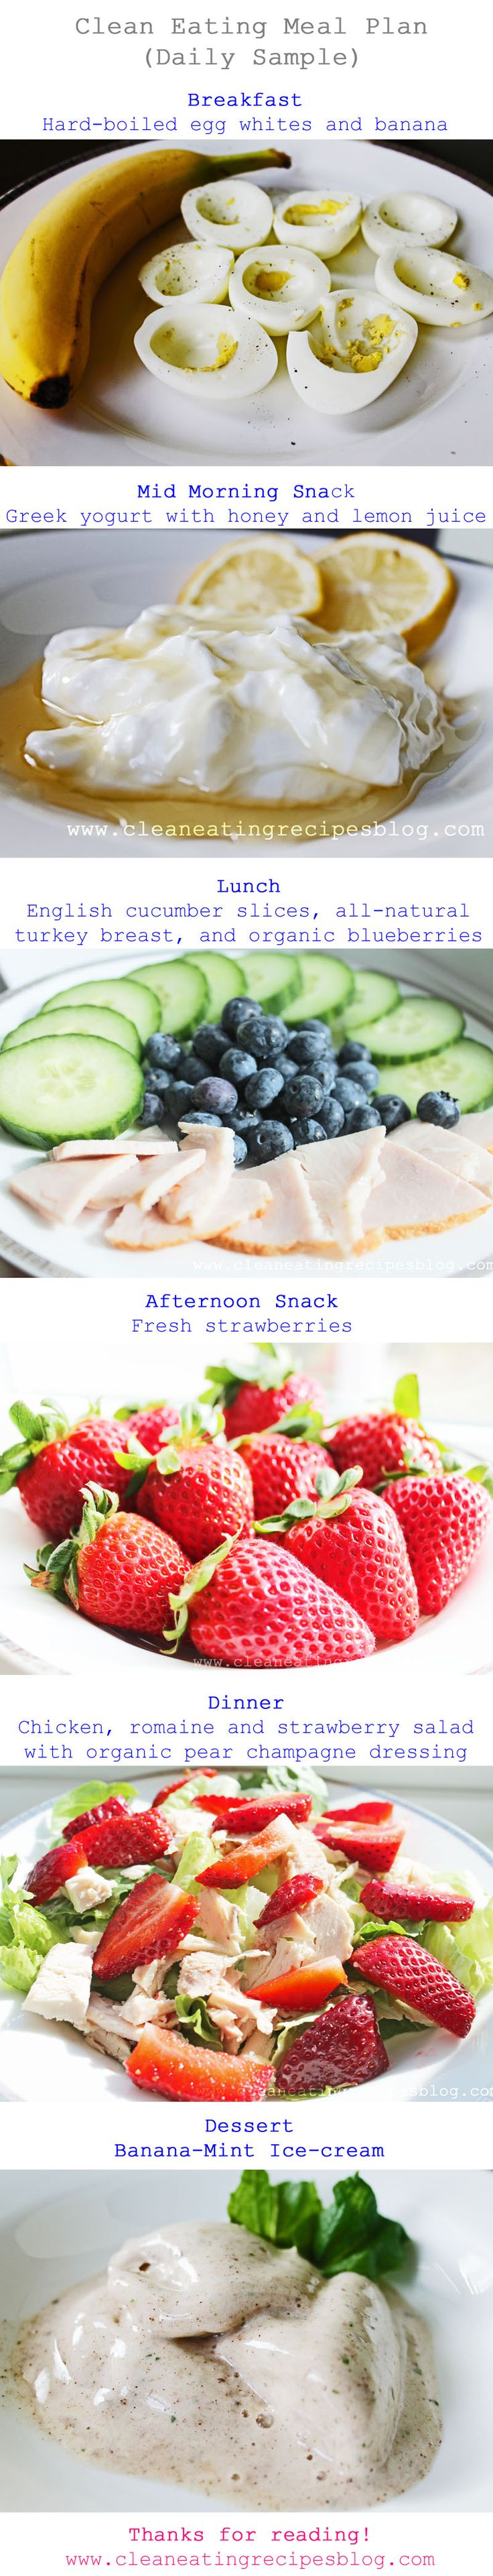 daily clean eating meal plan with clean eating meal ideas +++ Visit our website and get your free recipes now!